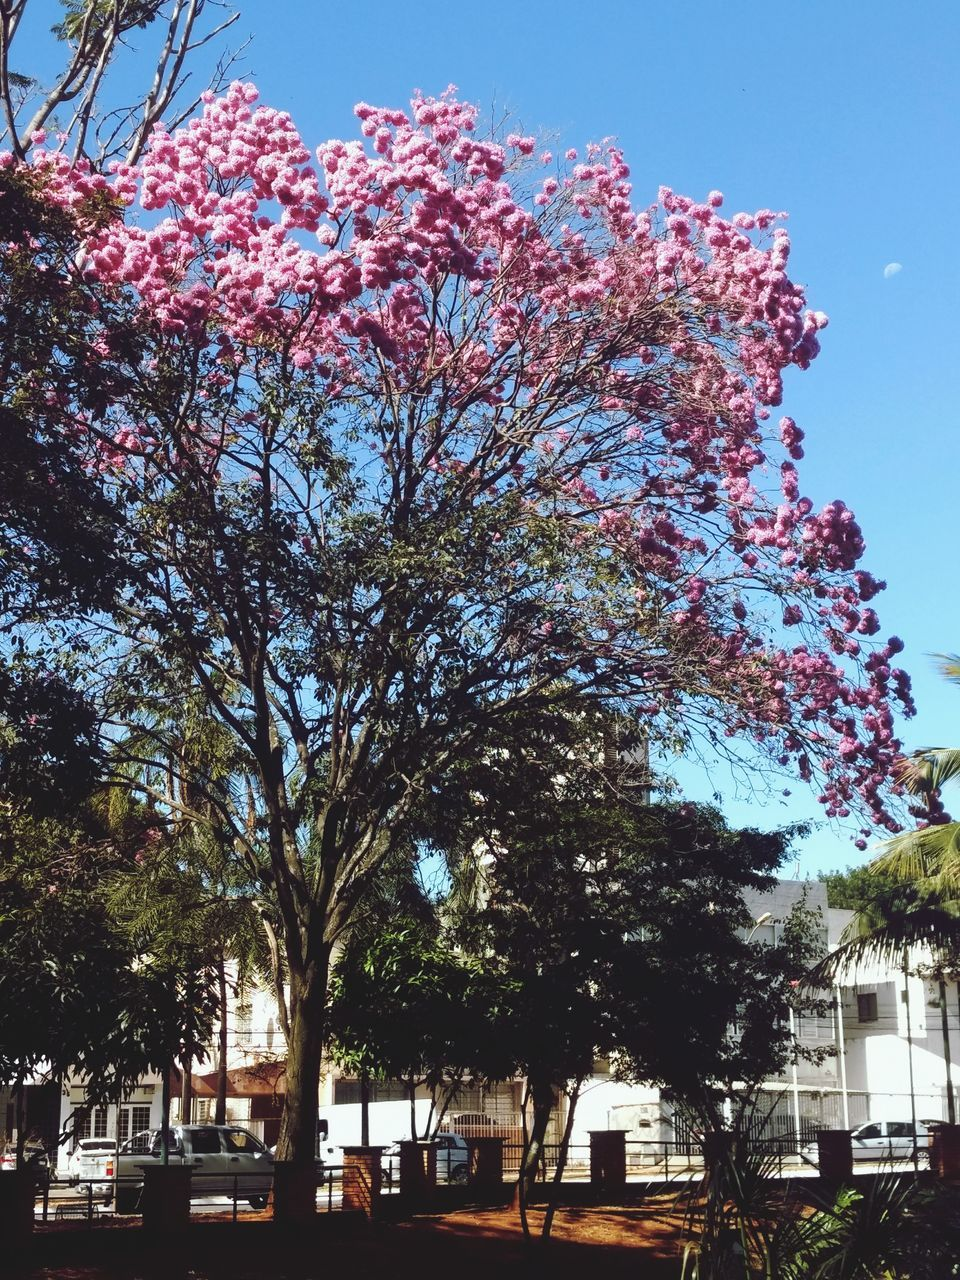 tree, growth, outdoors, nature, day, sky, no people, flower, city, beauty in nature